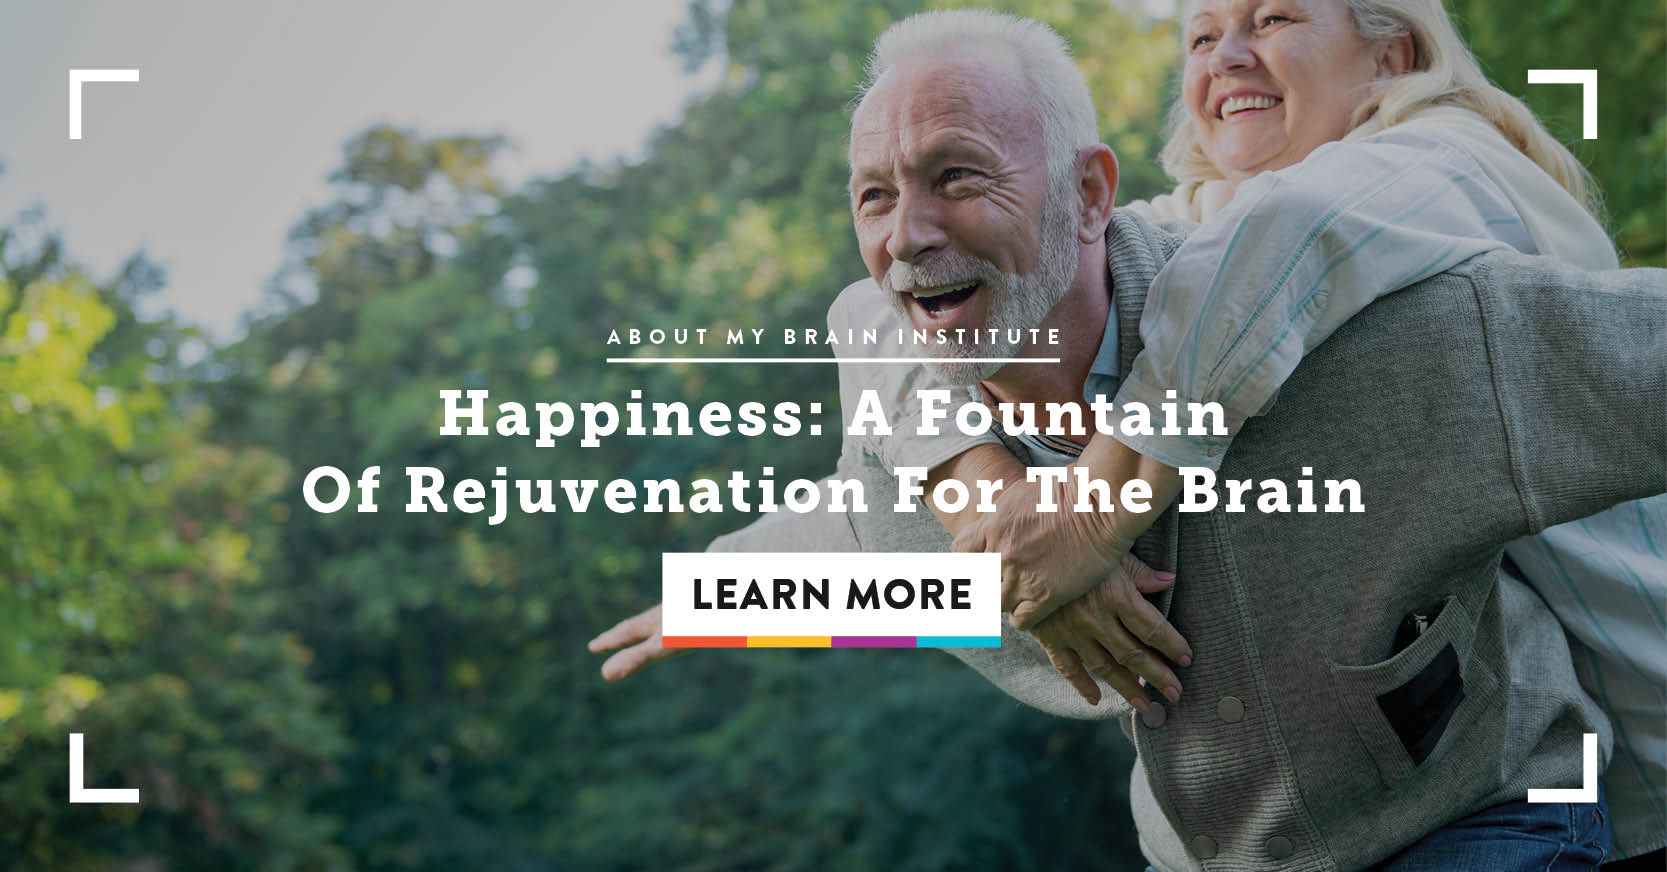 Happiness: A Fountain Of Rejuvenation For The Brain